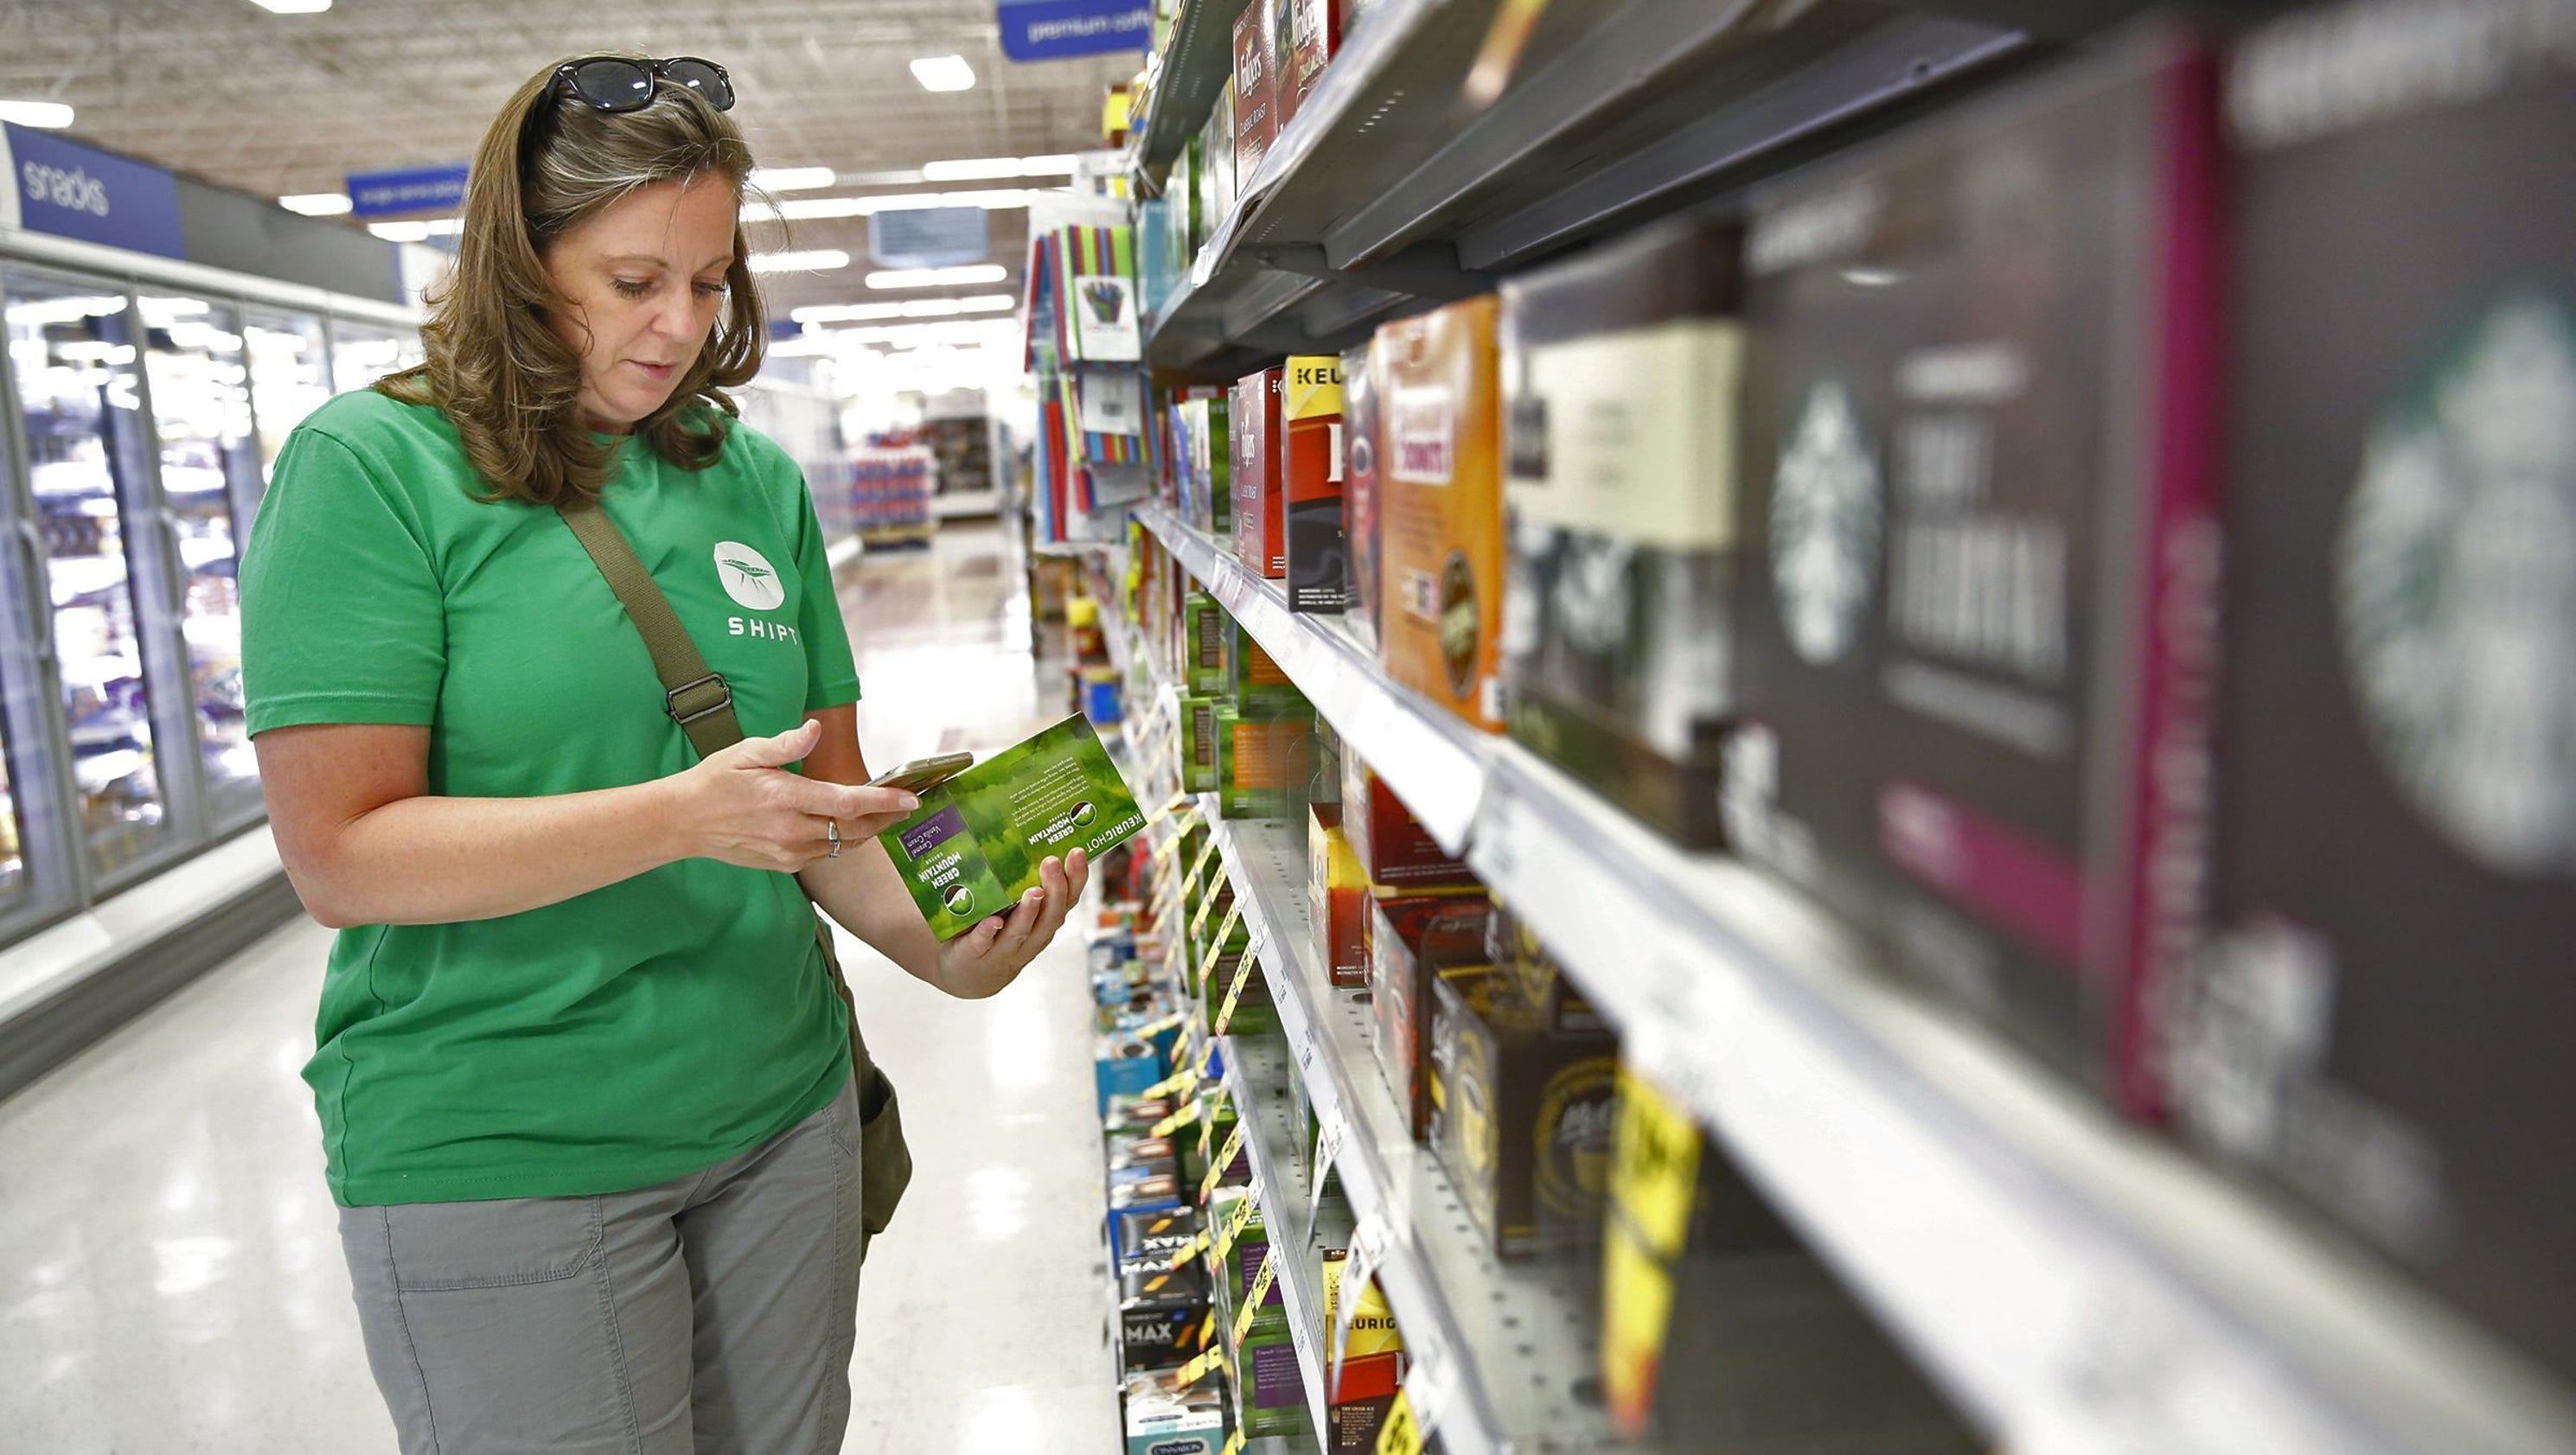 Whole Foods Jobs Indianapolis